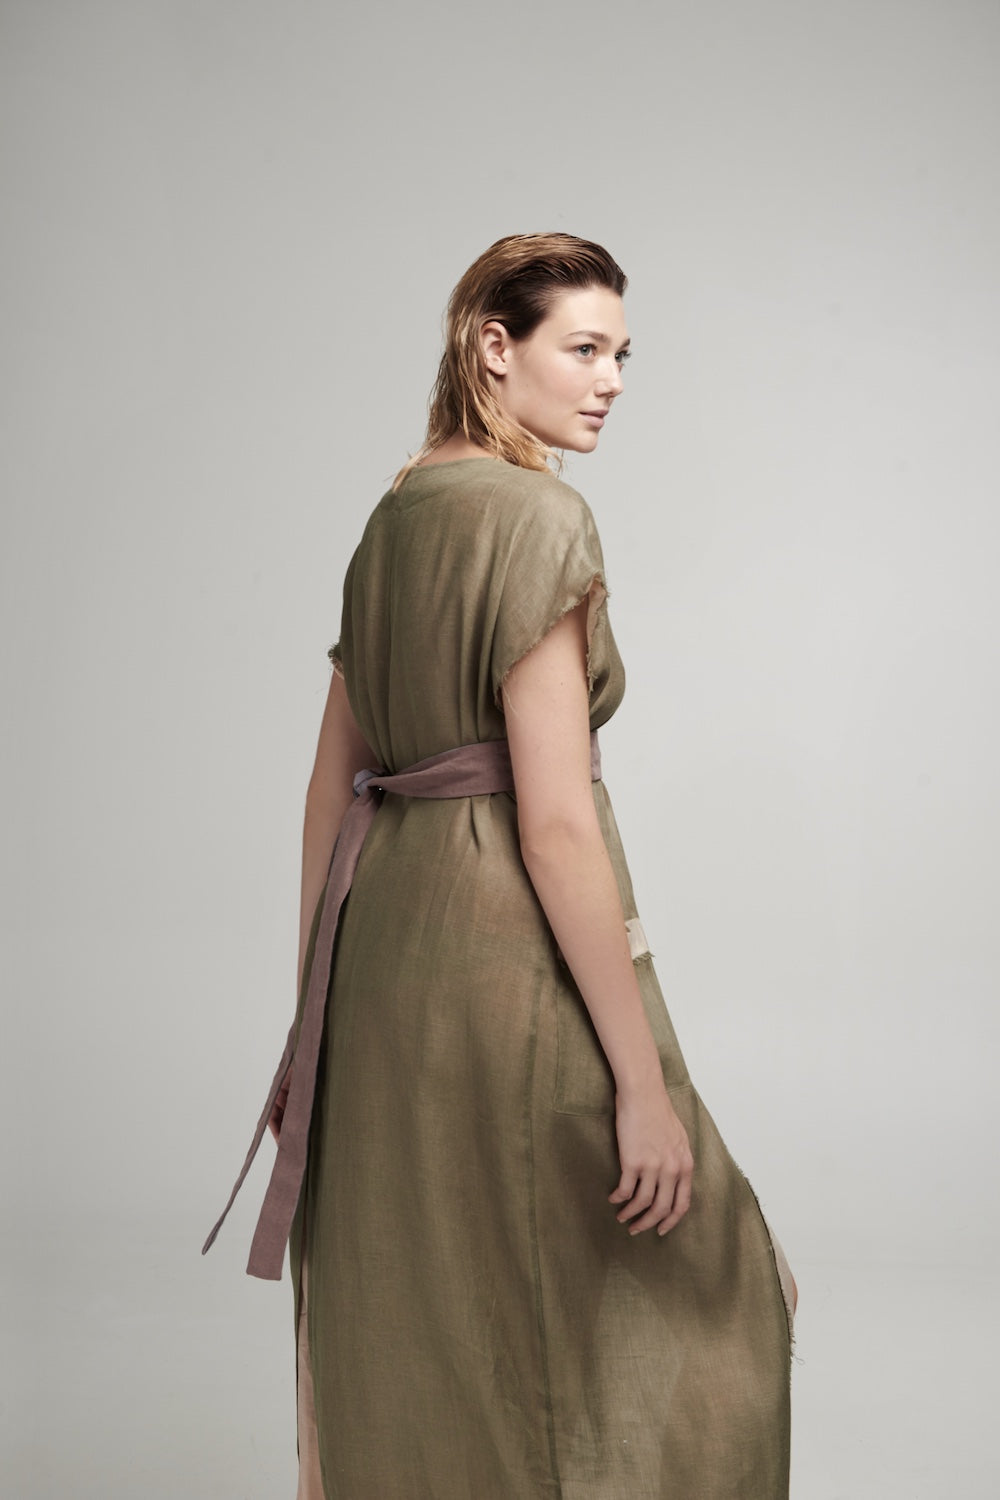 Aurora robe in Olive & Powder